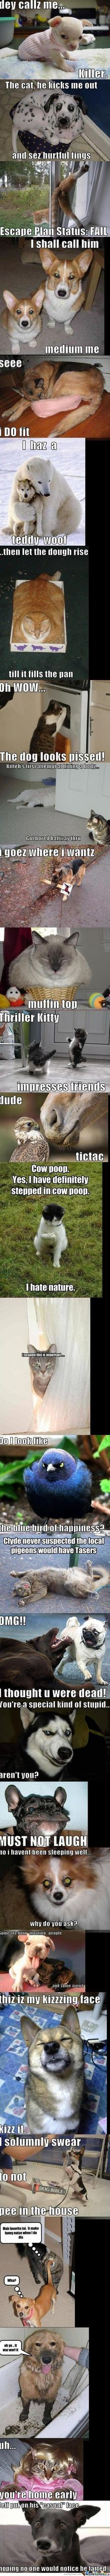 a whole bunch of funny animal pics